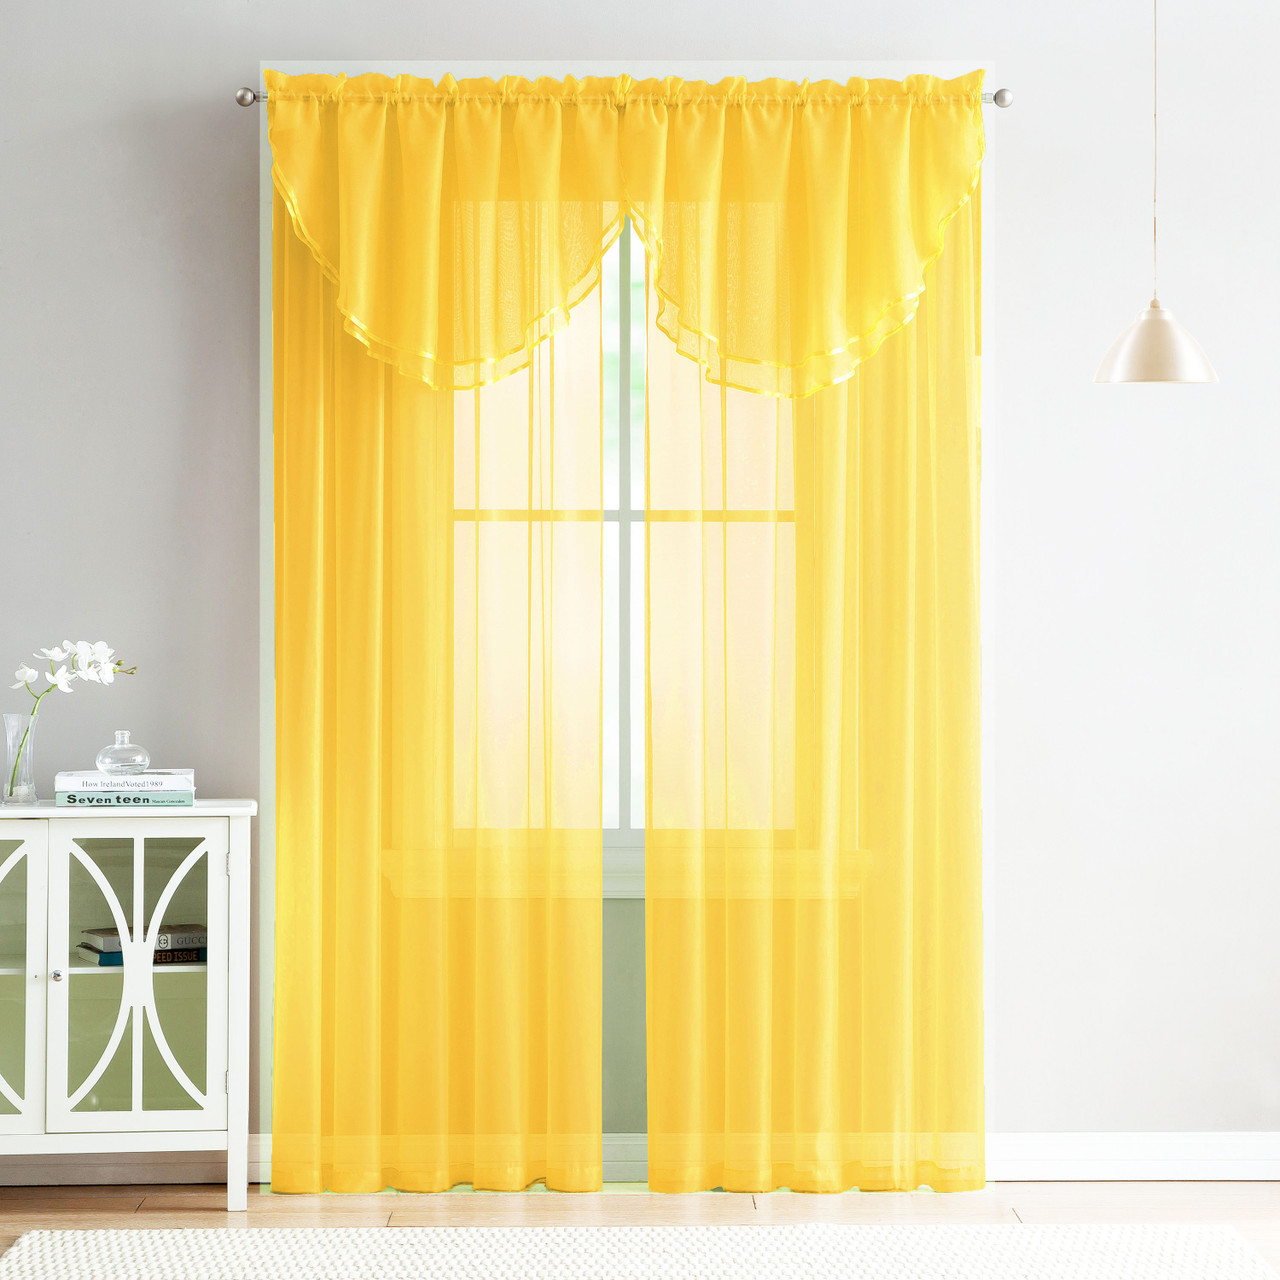 4 Piece Sheer Window Curtain Set for Living Room, Dining Room, Bay Windows:  2 Voile Valance Curtains and 2 Panels 90 in Long (Yellow)